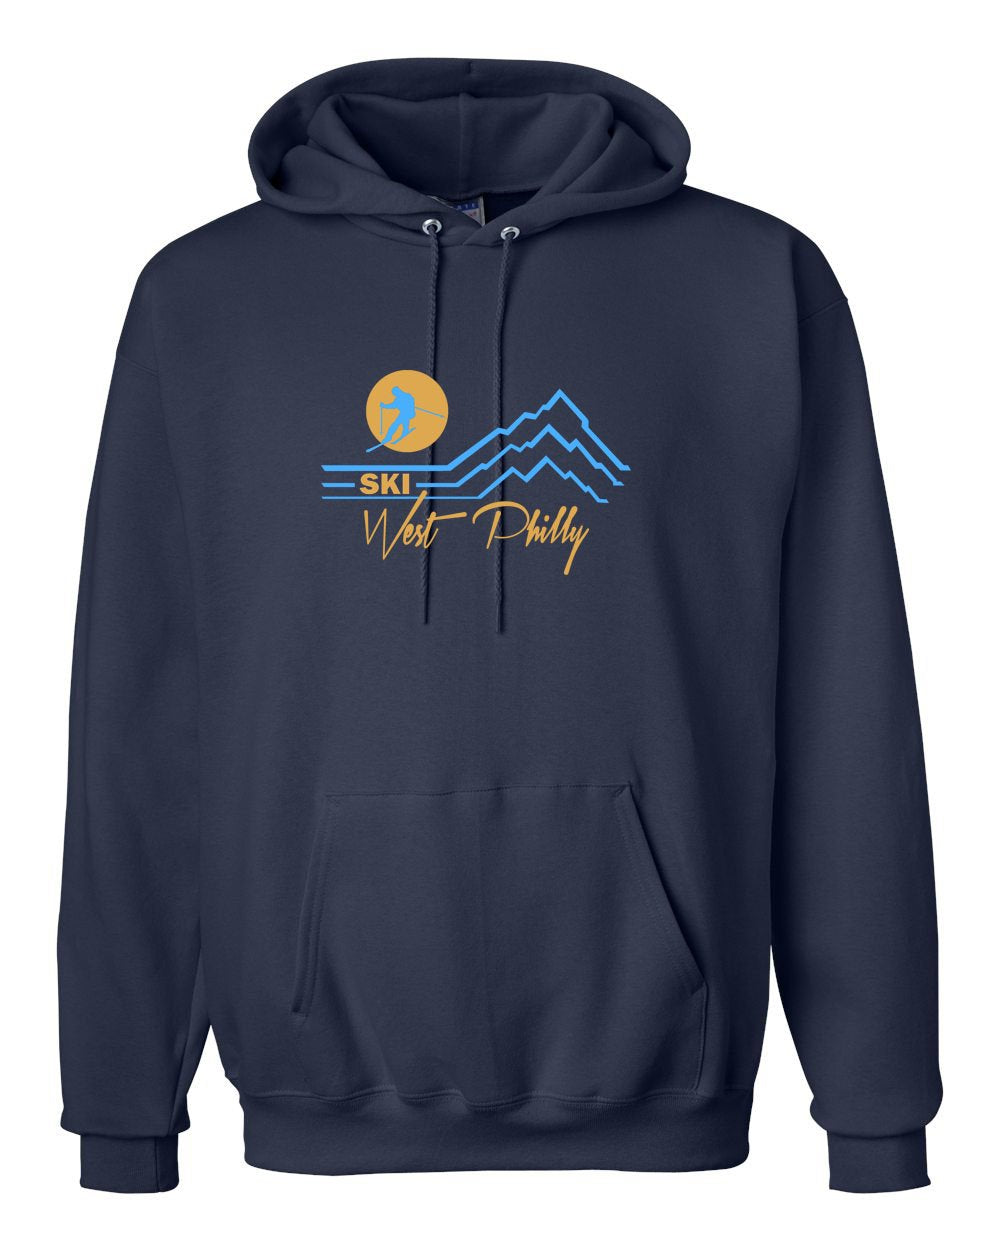 Ski West Philly Hoodie